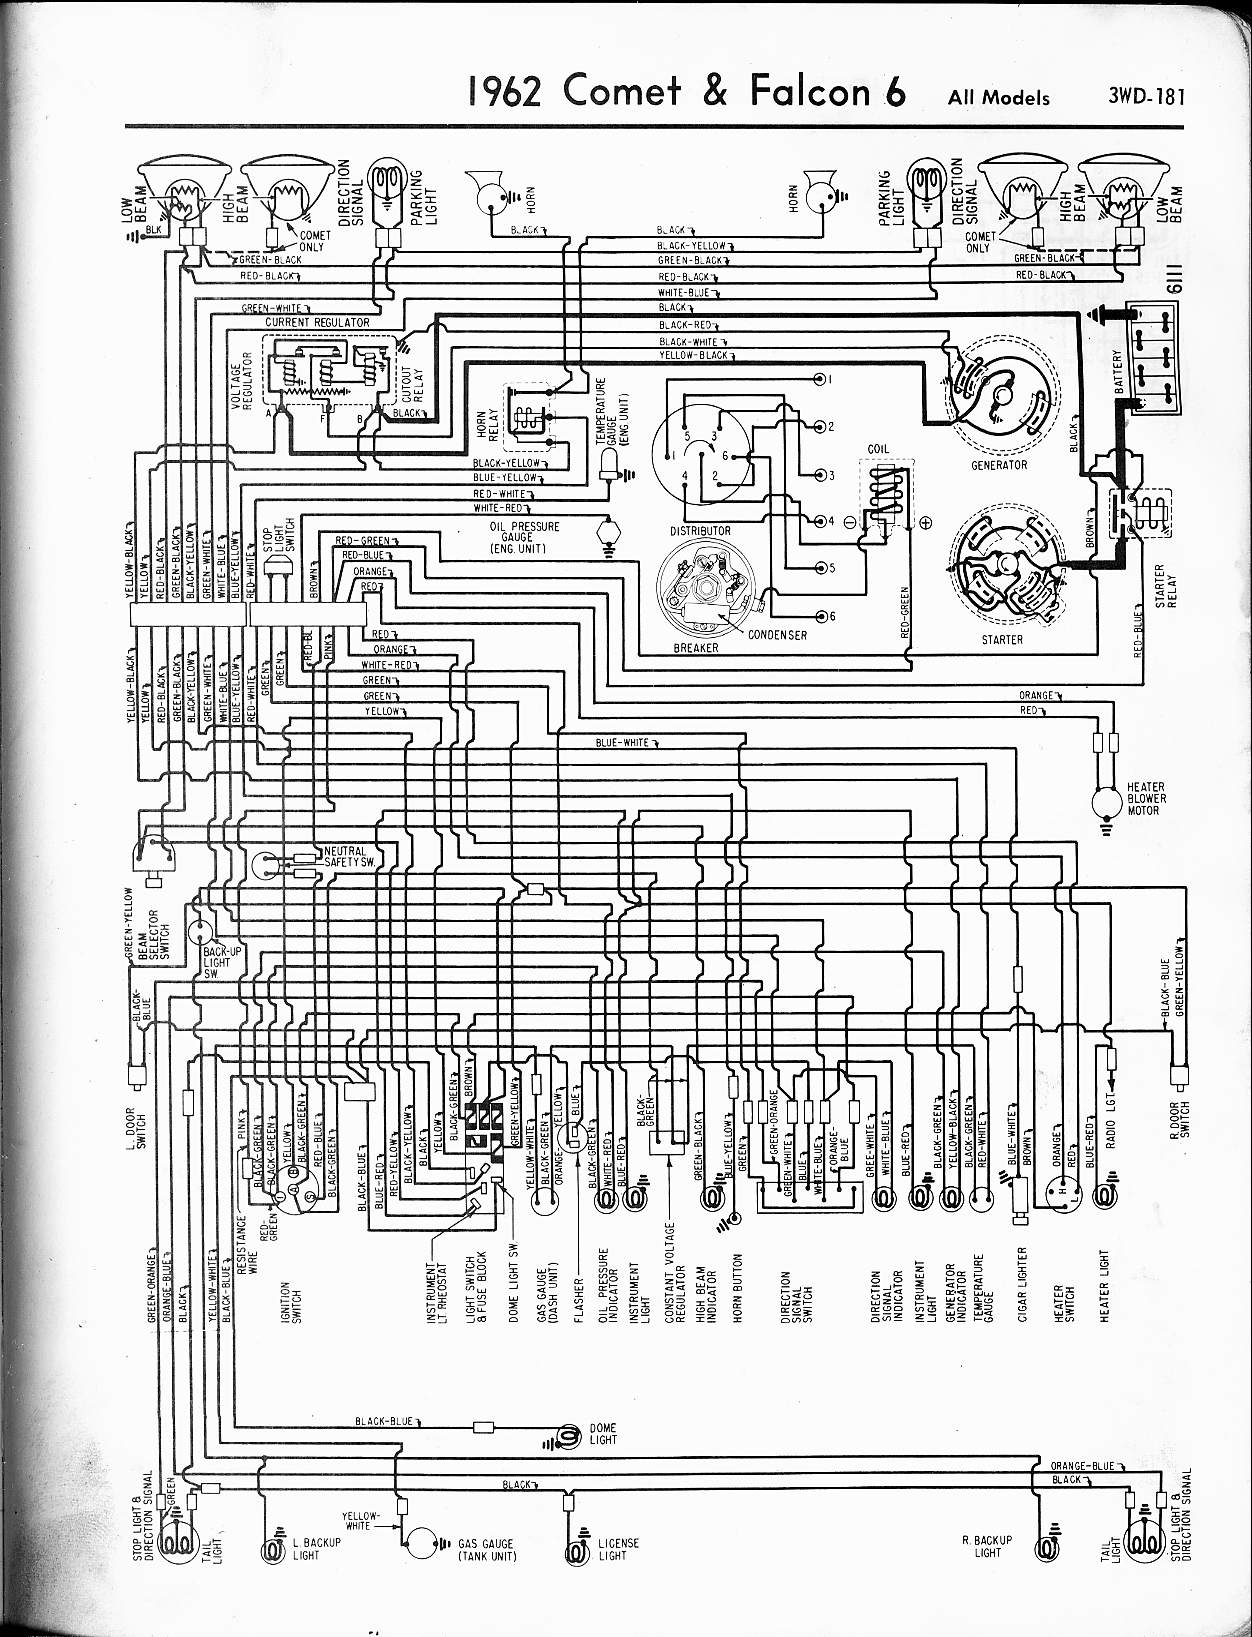 Automotive Schematics Fuse Box Wiring Diagram 1964 Ford Falcon Futura Ba Free Origin Rh 19 10 4 Darklifezine De